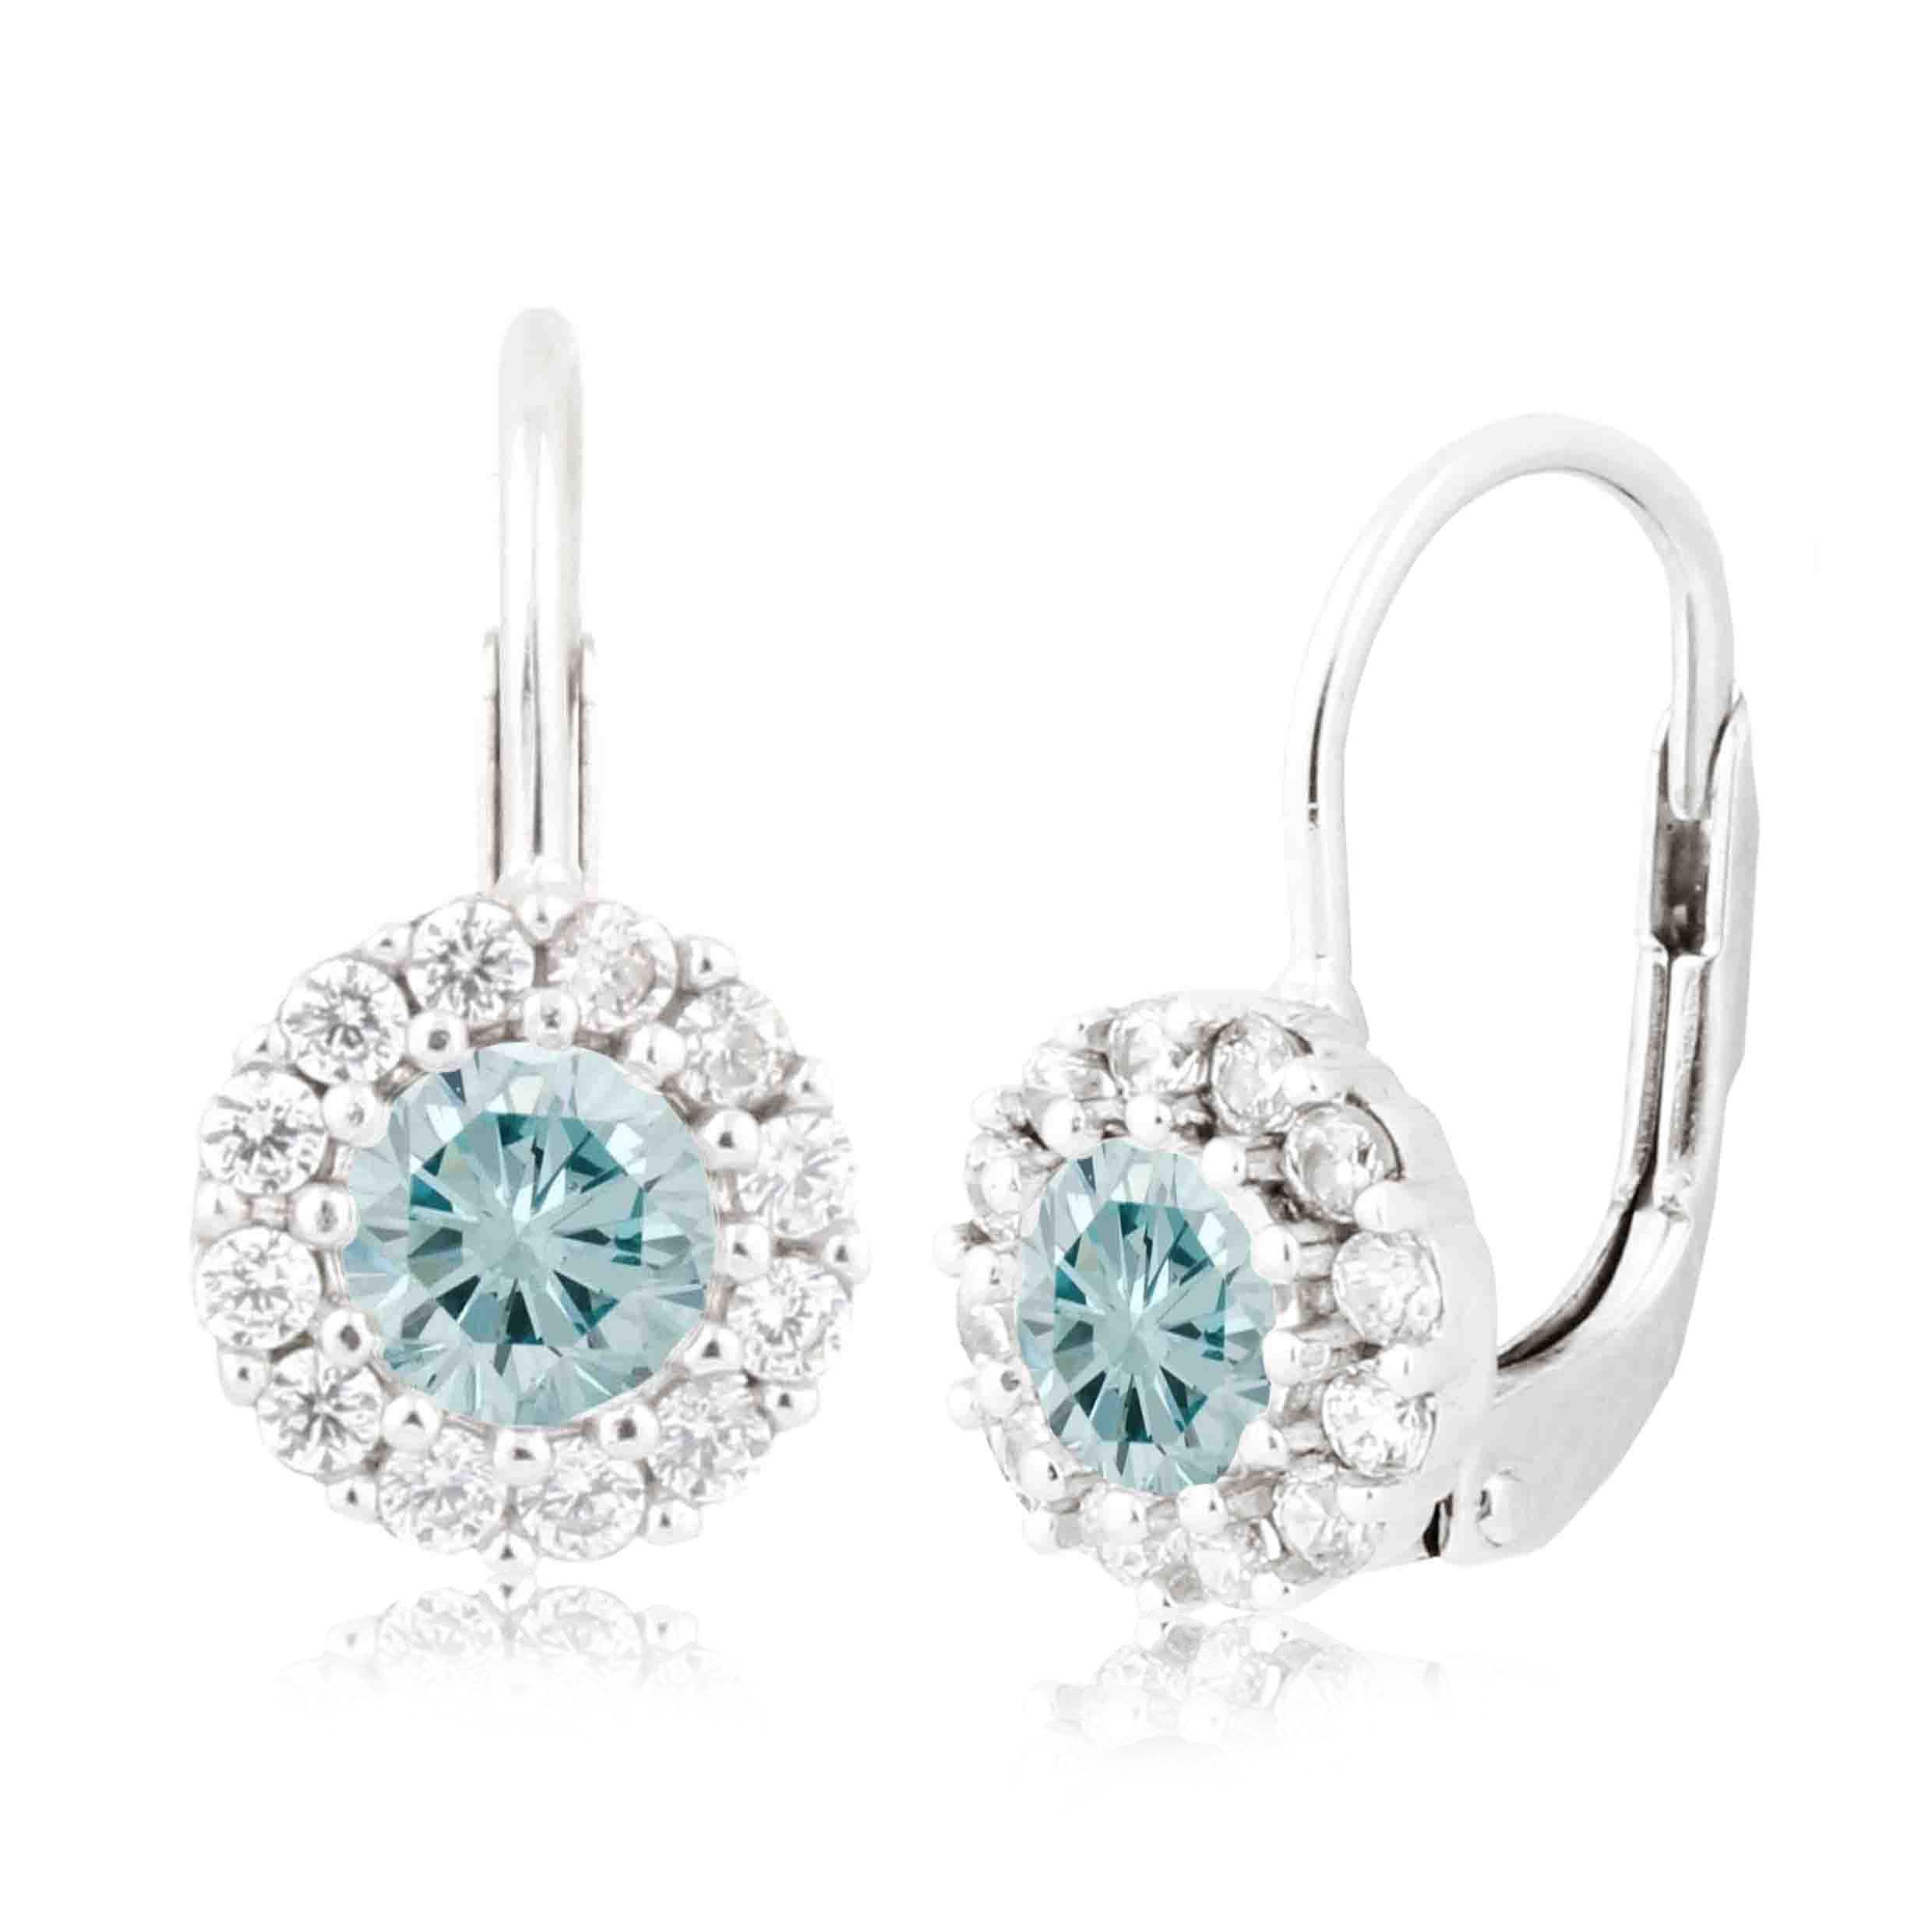 March birthstone earrings in sterling silver with cz products